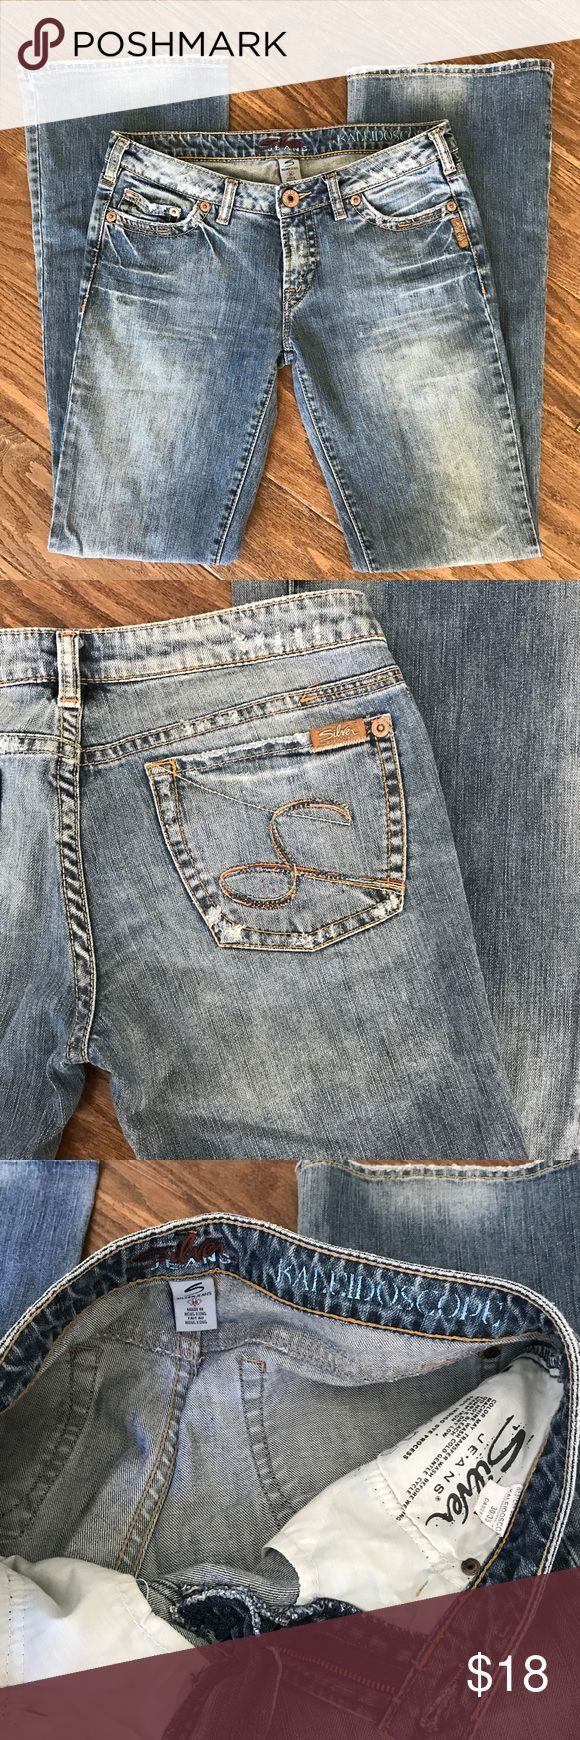 Silver Jeans Kaleidoscope 30 womens Jeans size 30 Excellent condition women's jeans size 30/35. When measured the inseam is 34 inches even though the sizing label says 35. Silver Jeans Jeans Boot Cut